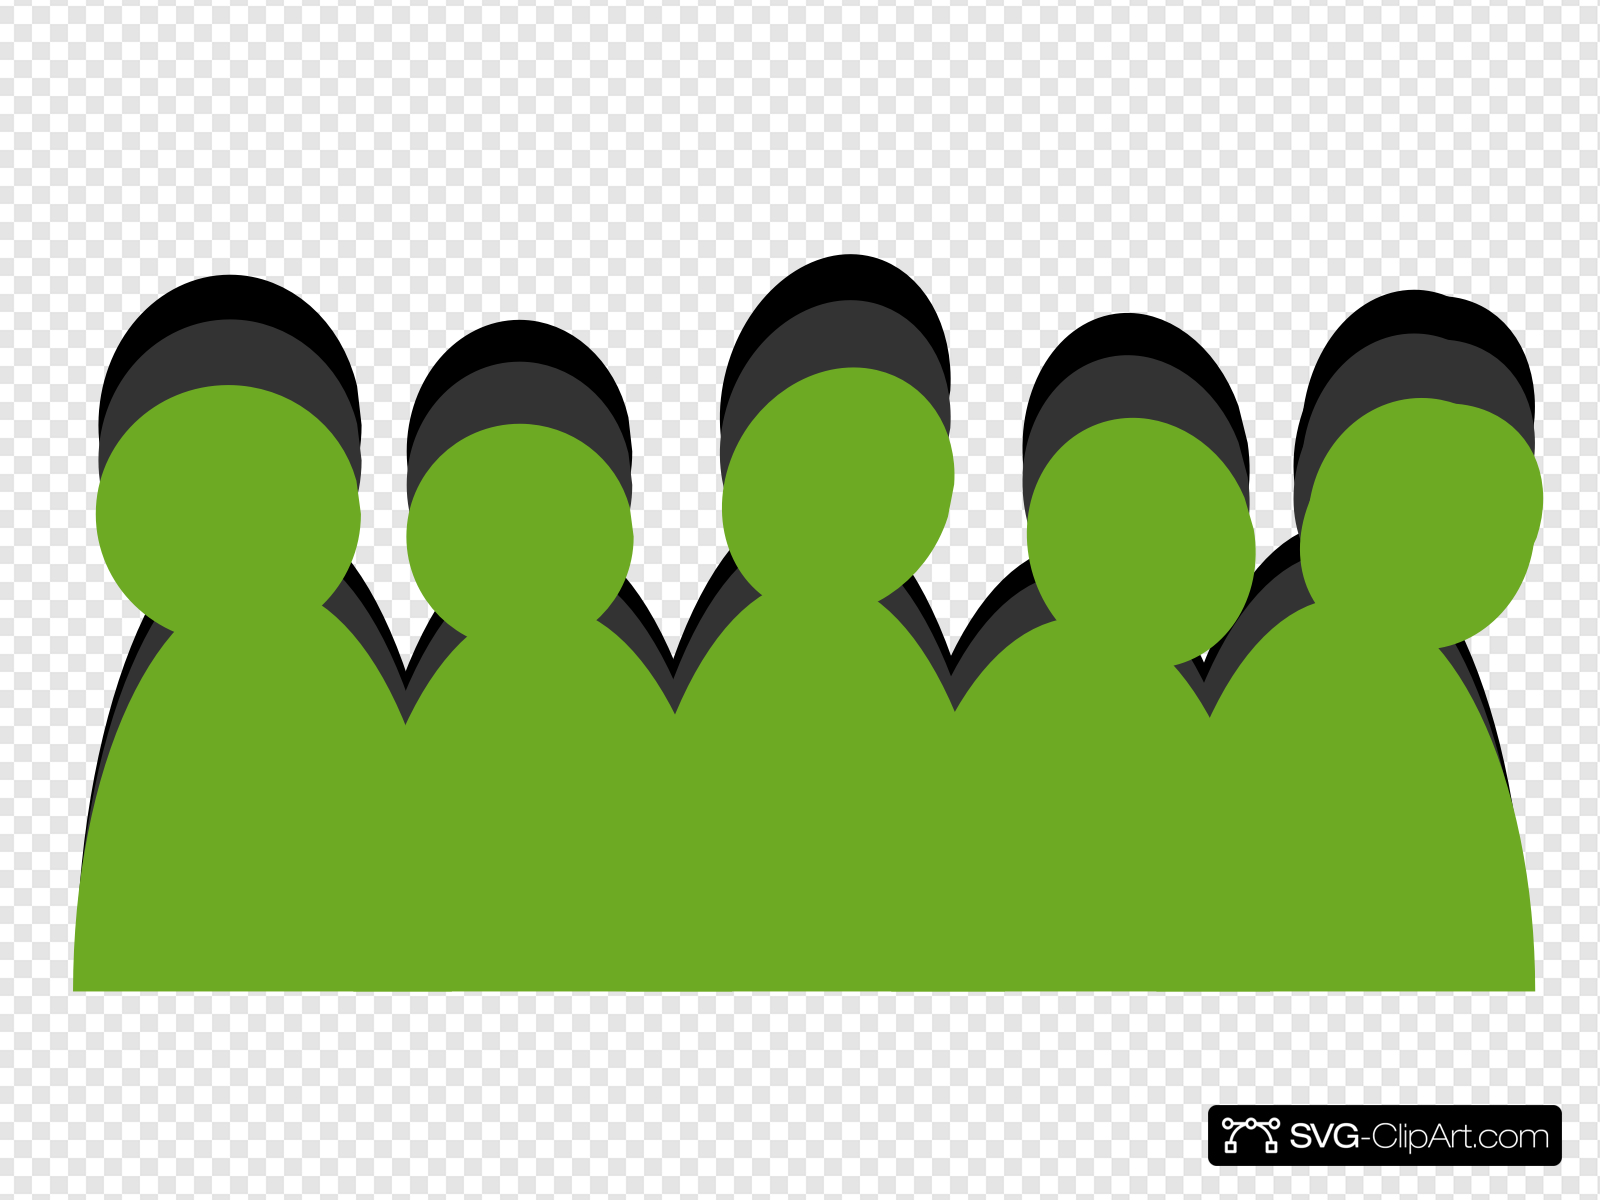 Consistent Group Clip art, Icon and SVG.